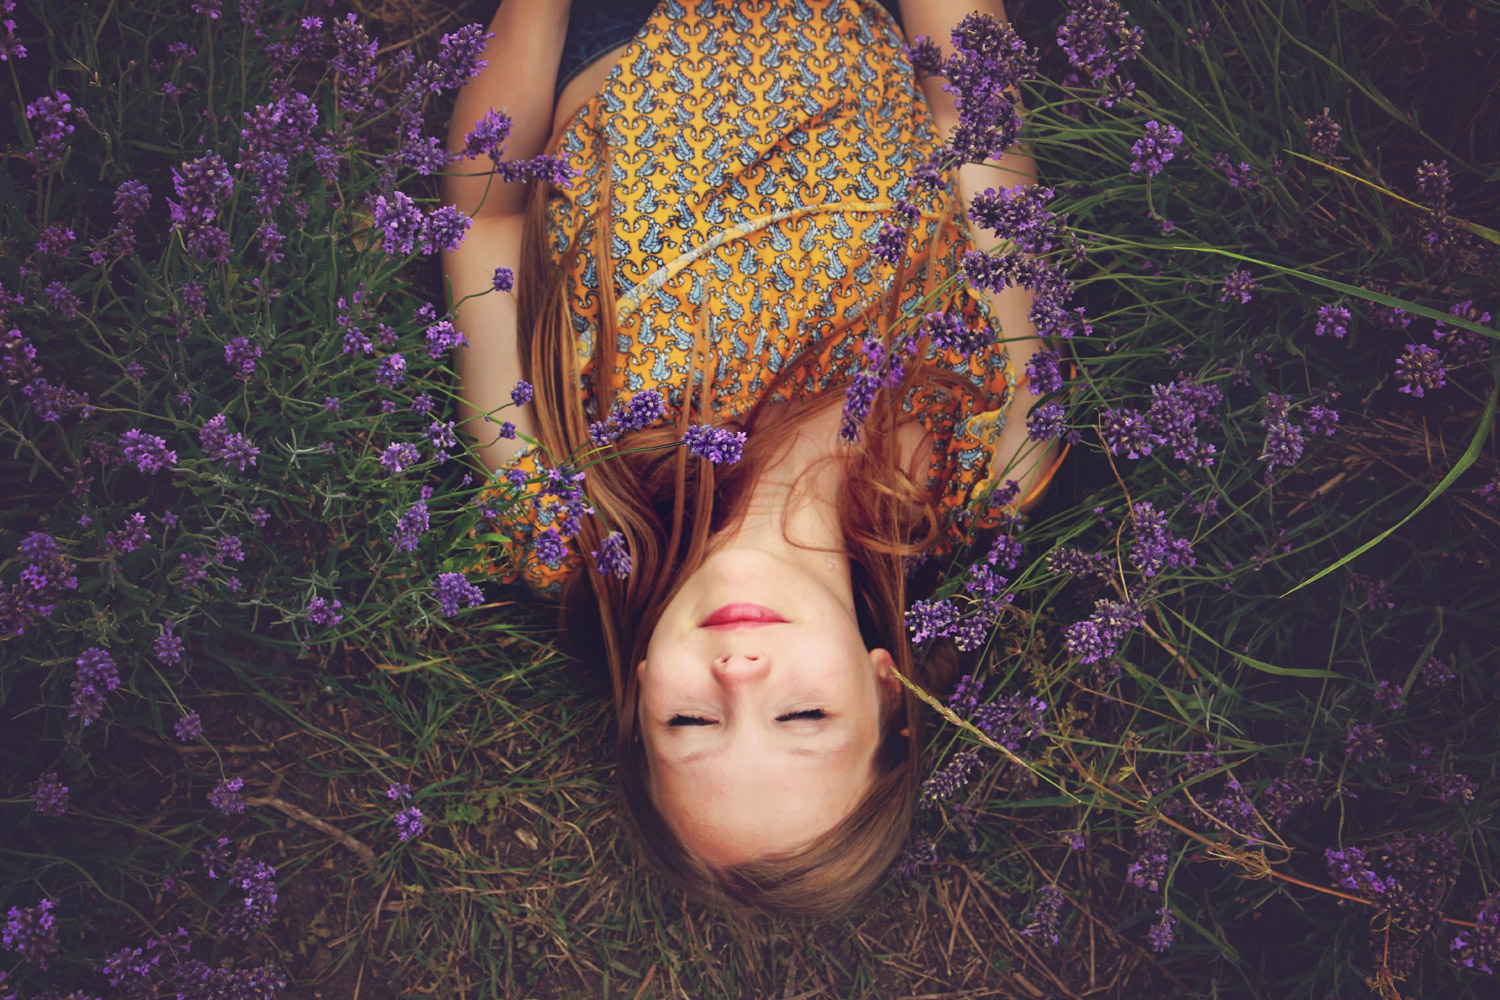 Woman sleeping in flower field insomnia